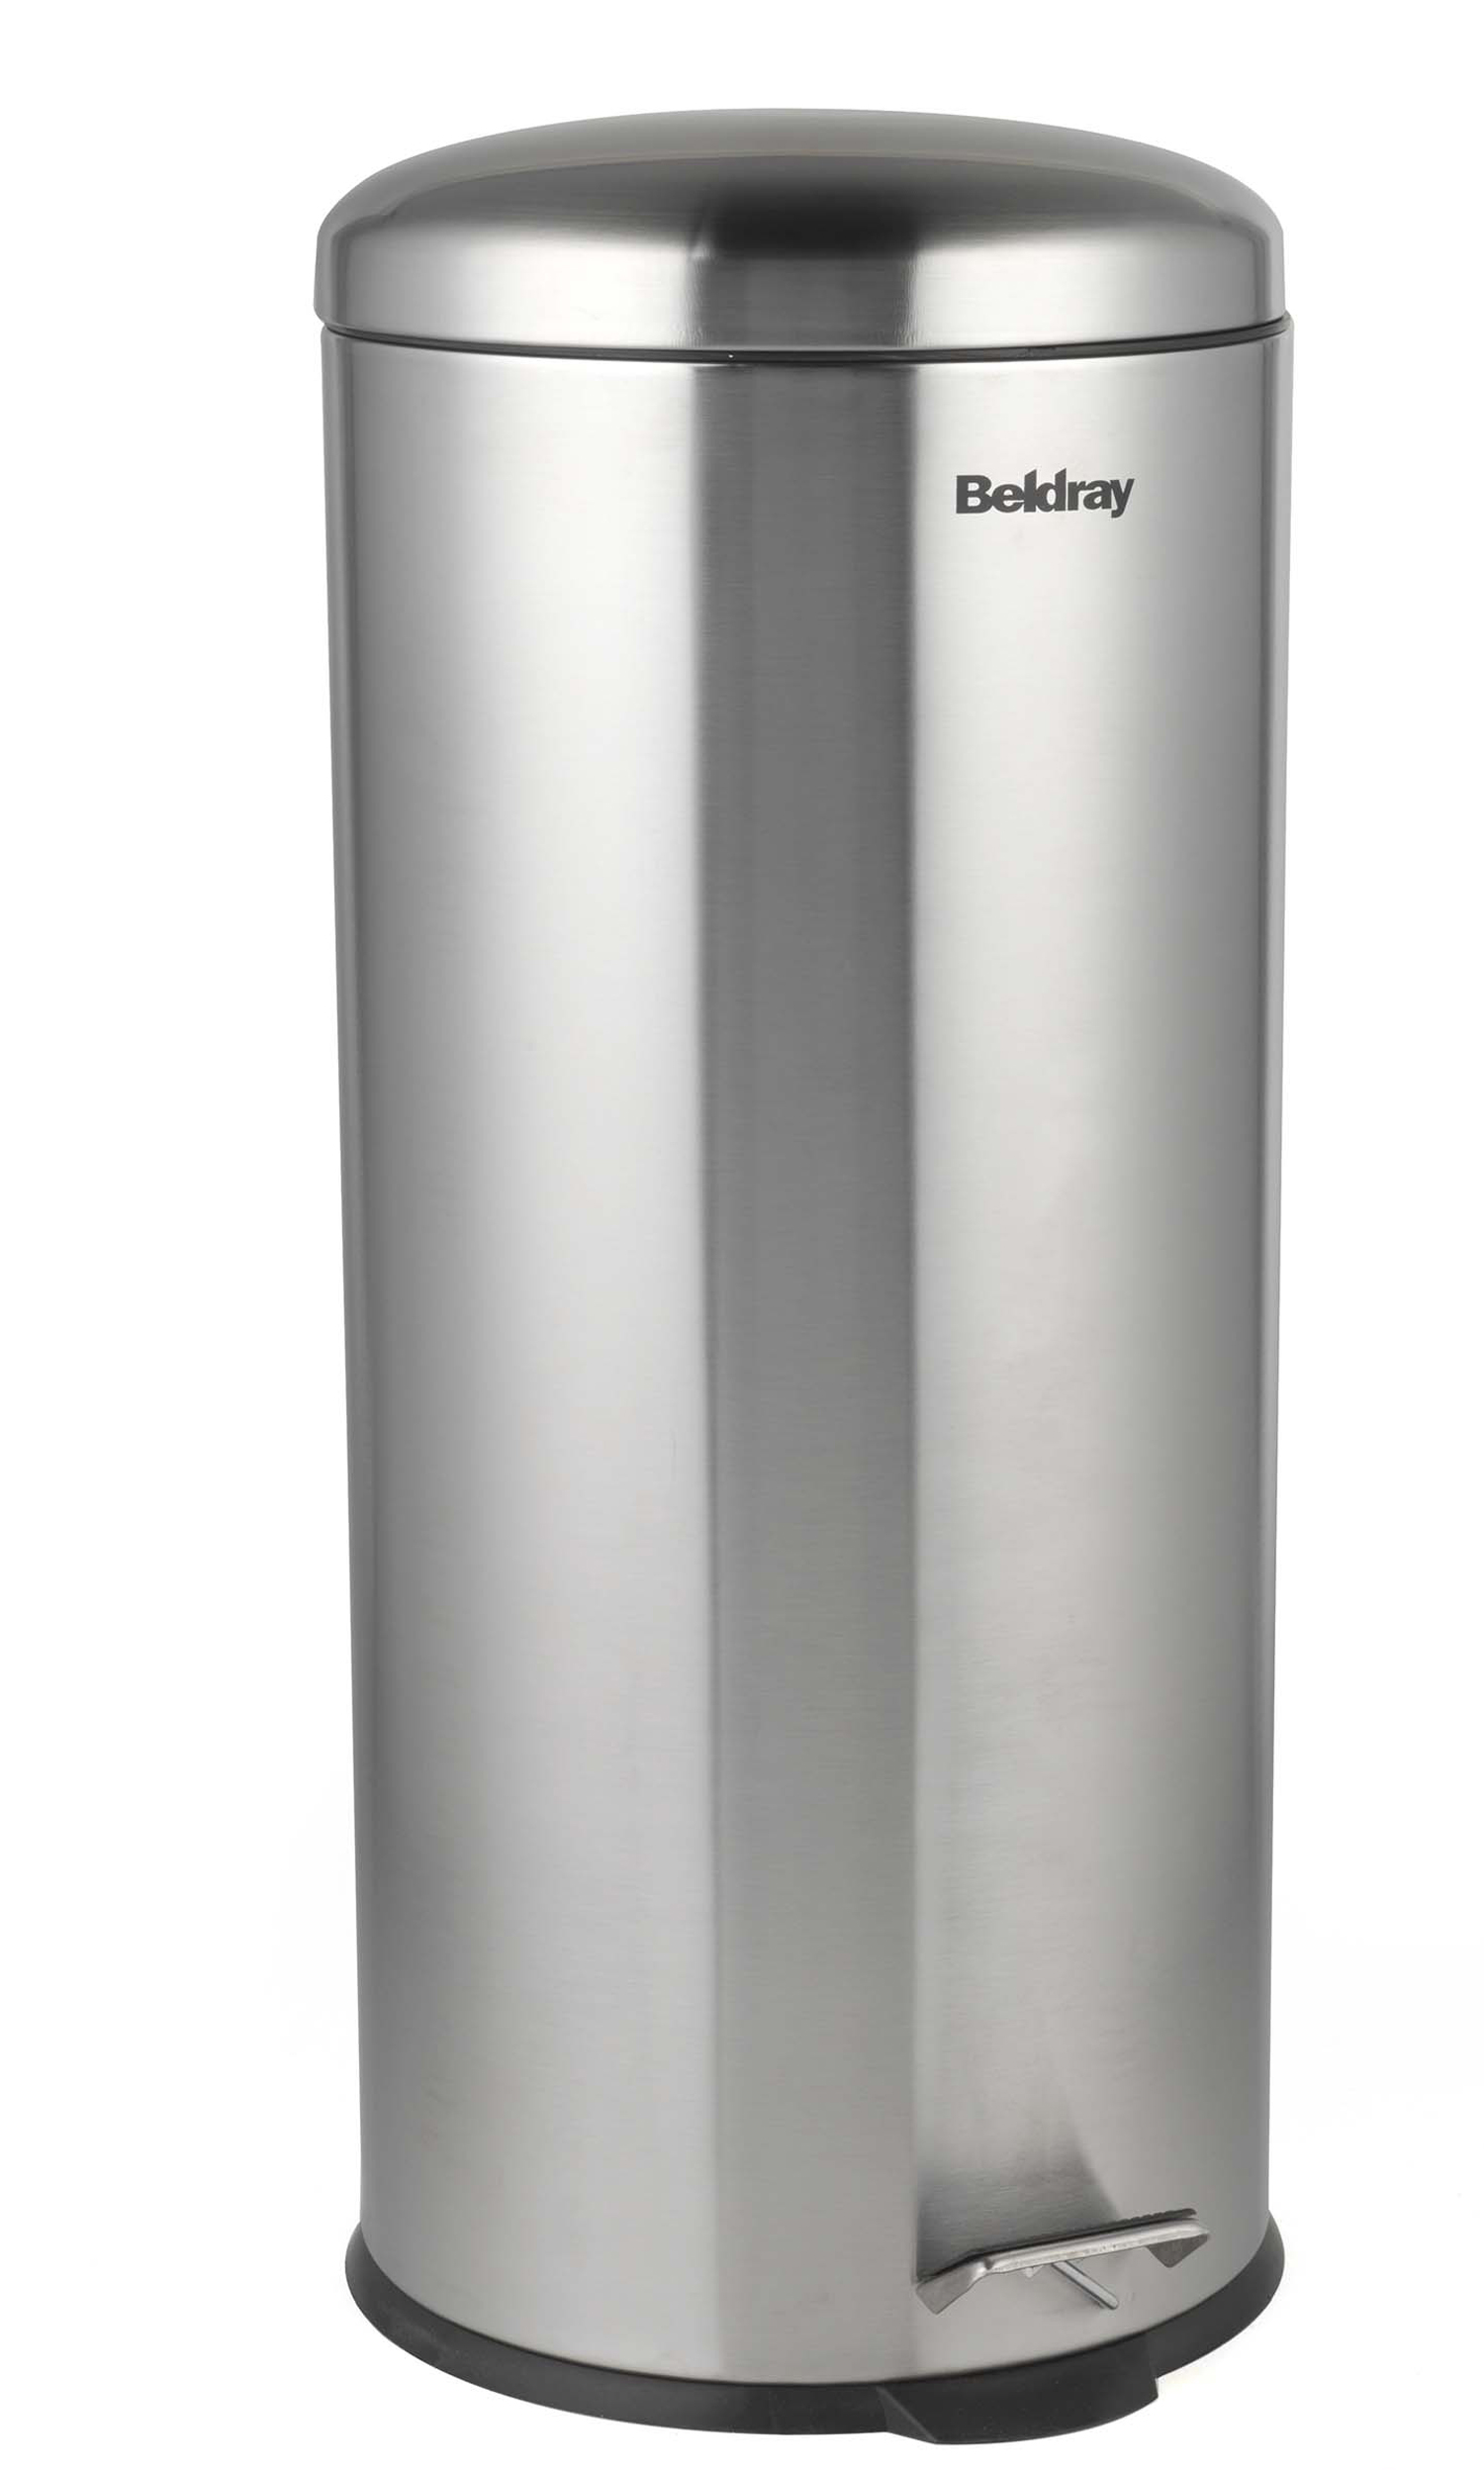 Beldray La038074ss 30 Litre Stainless Steel Kitchen Bin With Soft Closing Lid